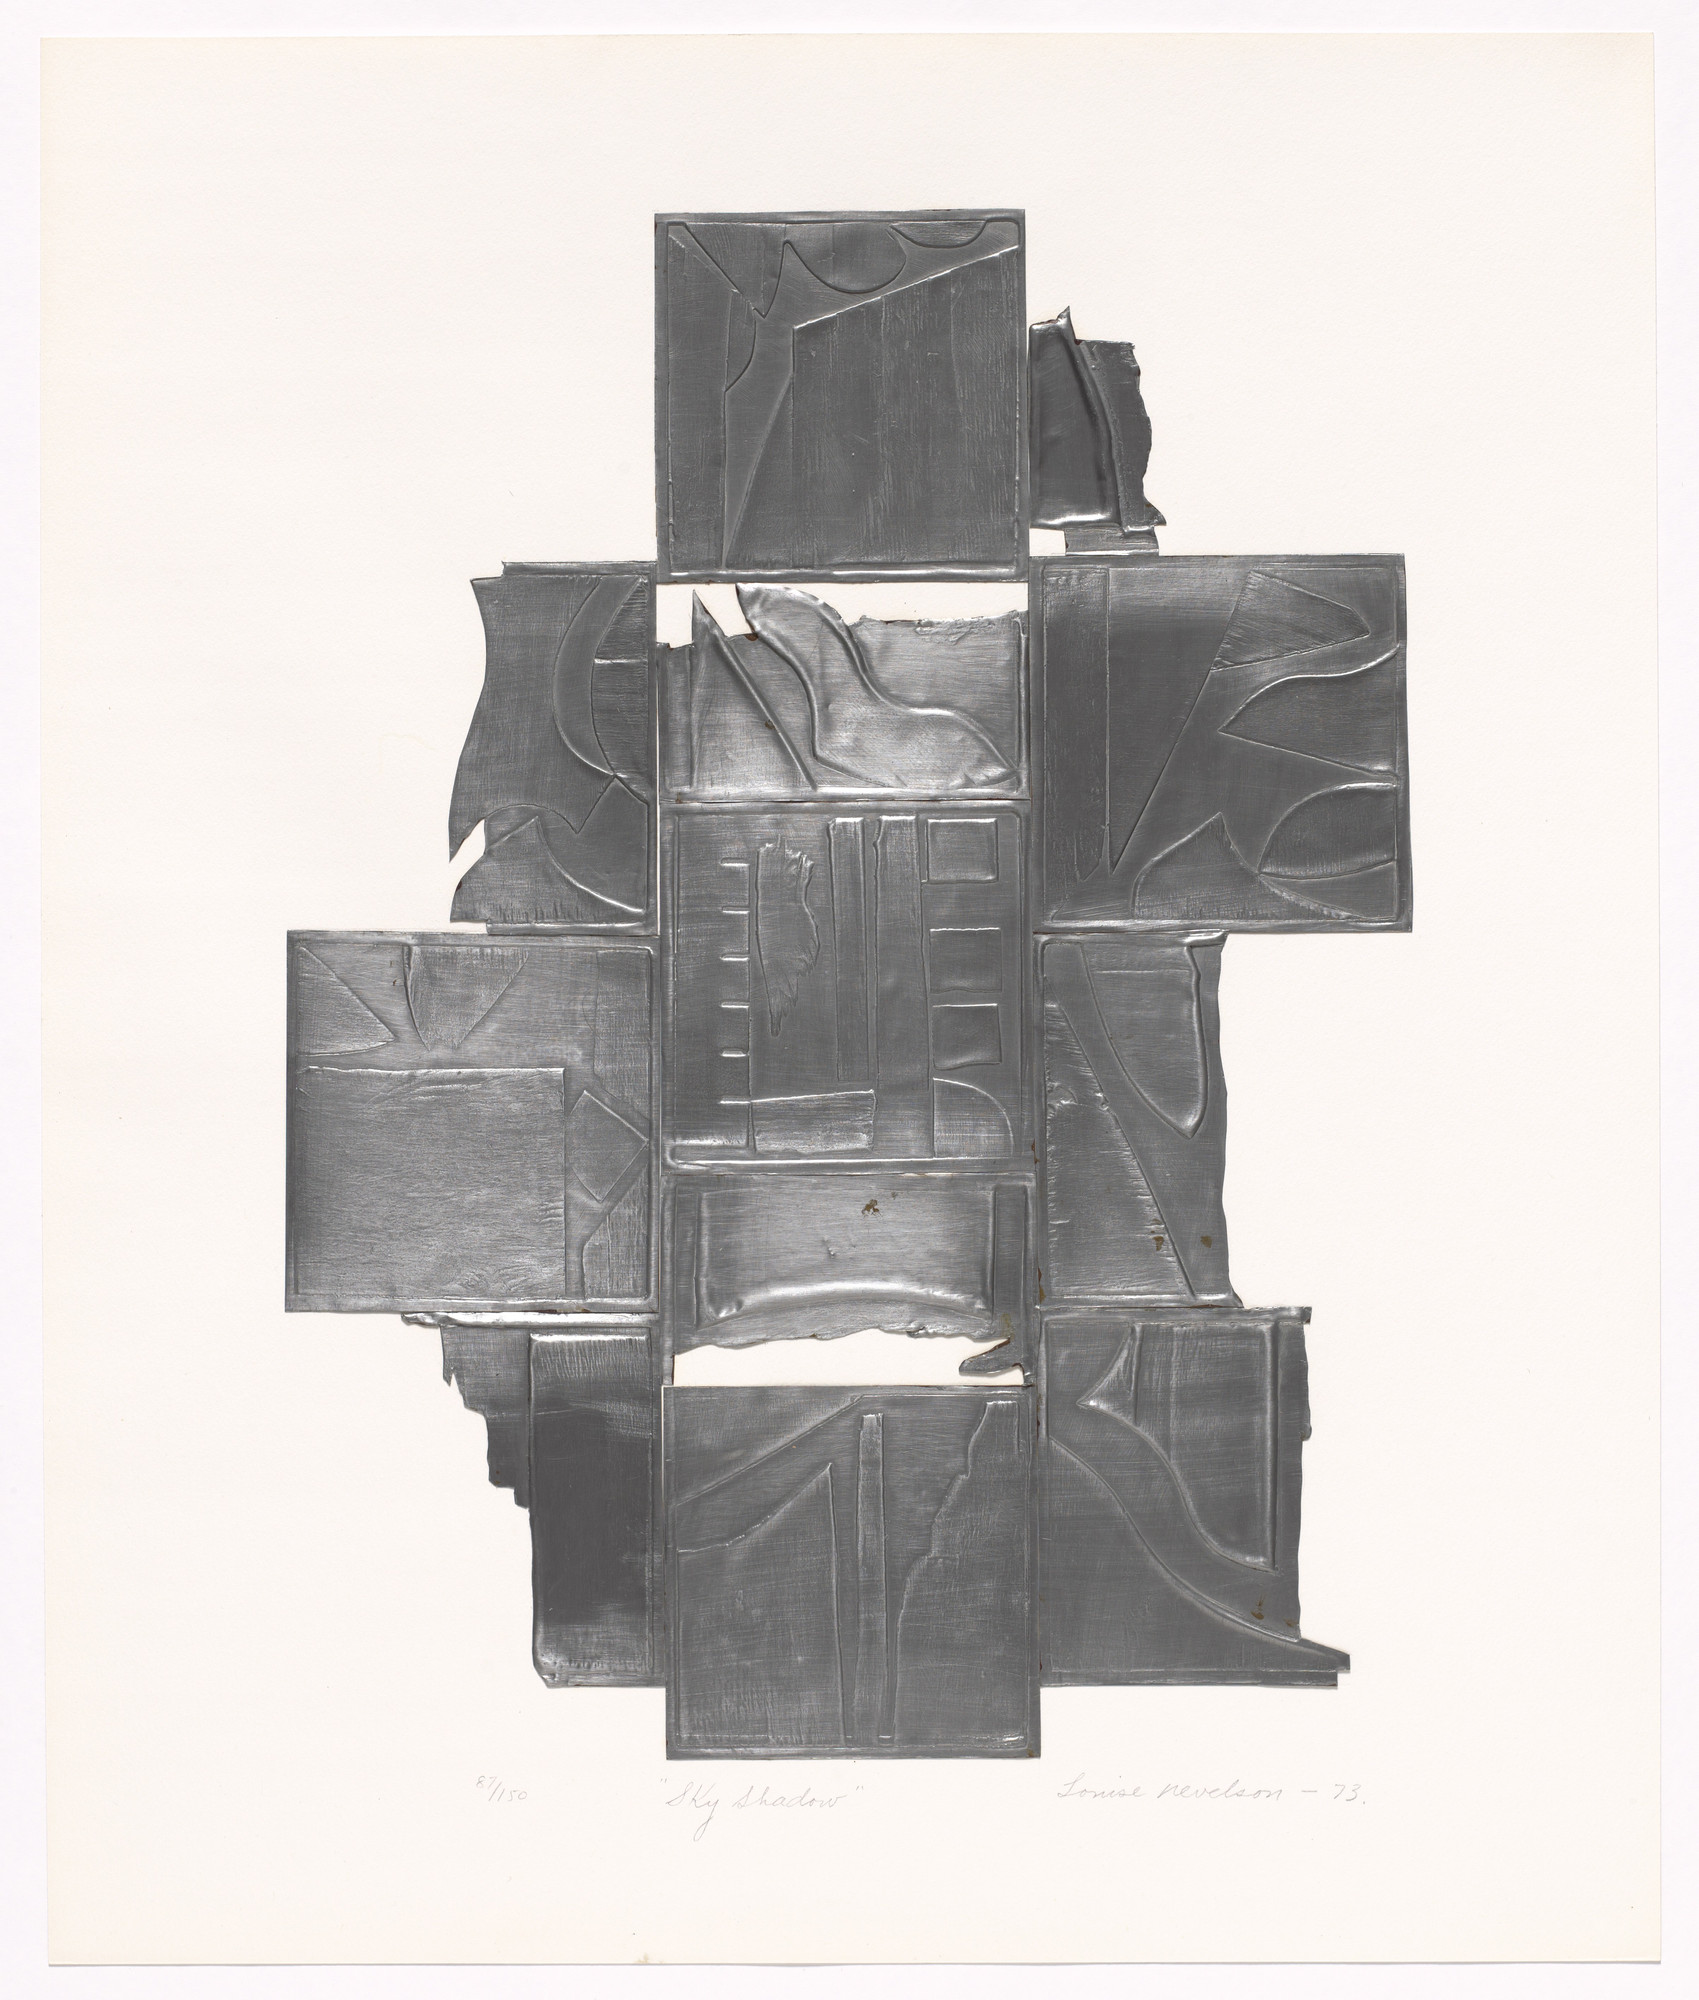 Louise Nevelson. Sky Shadow. 1973